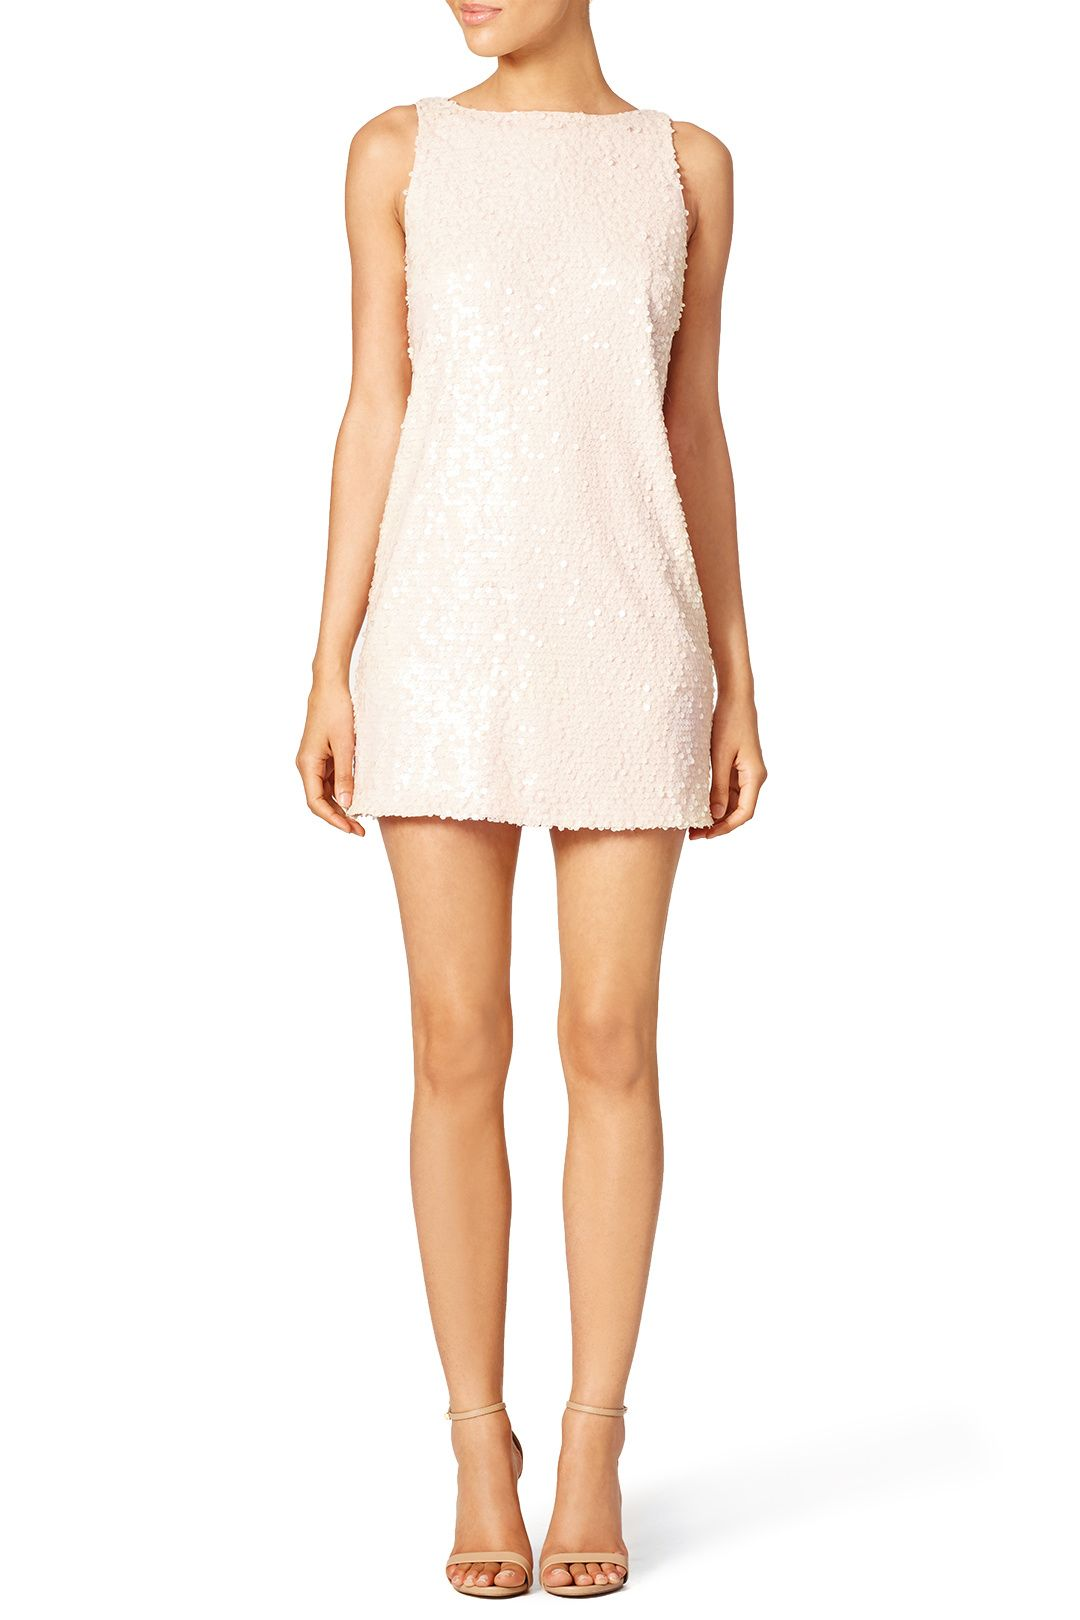 538c5e2bb32ab Rent Betty Shift by Jay Godfrey for $50 only at Rent the Runway ...